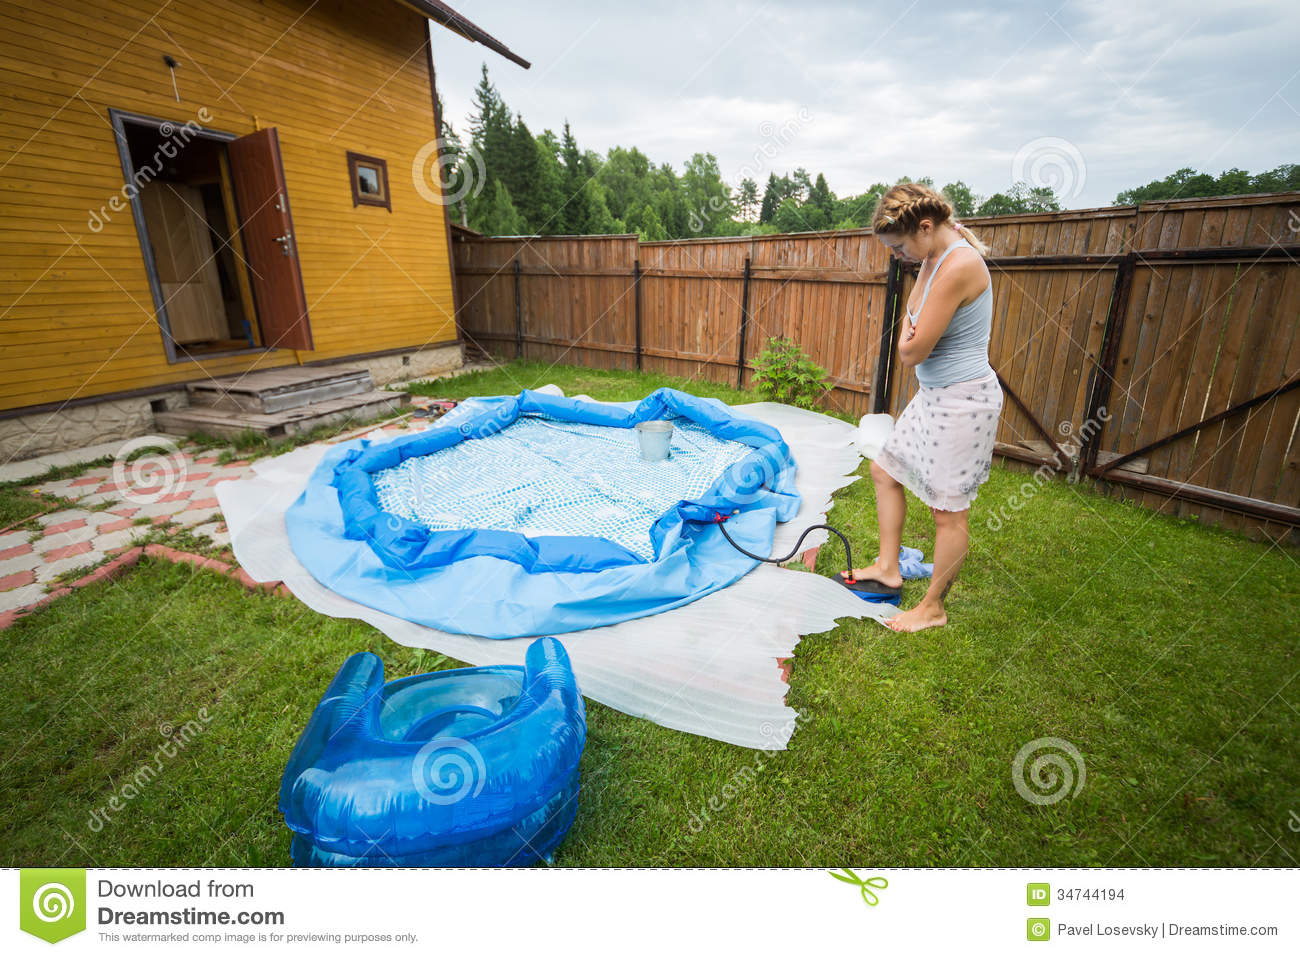 Woman inflates inflatable swimming pool